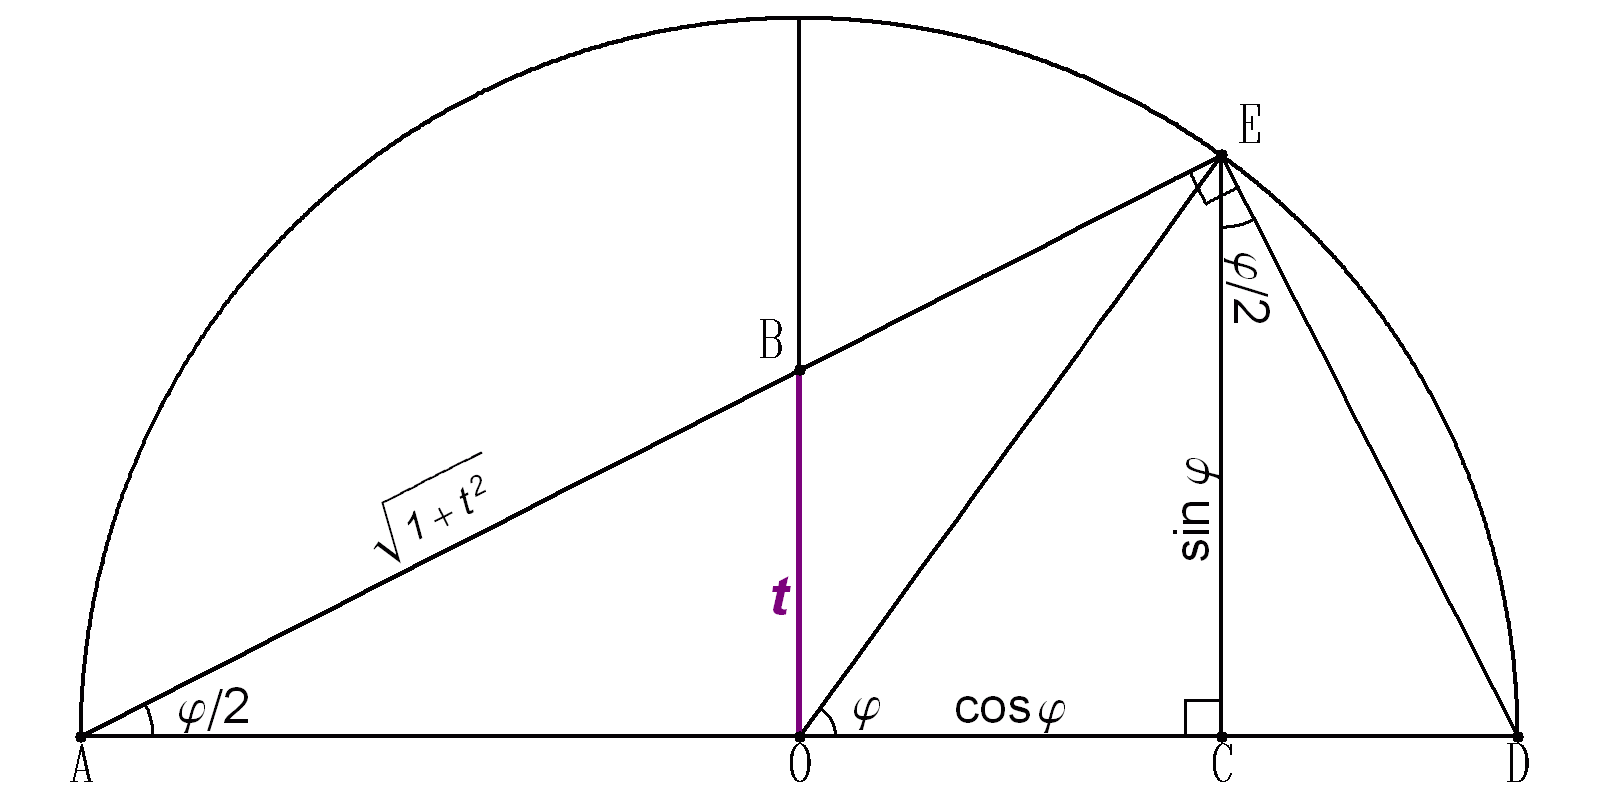 Tangent Half Angle Substitution